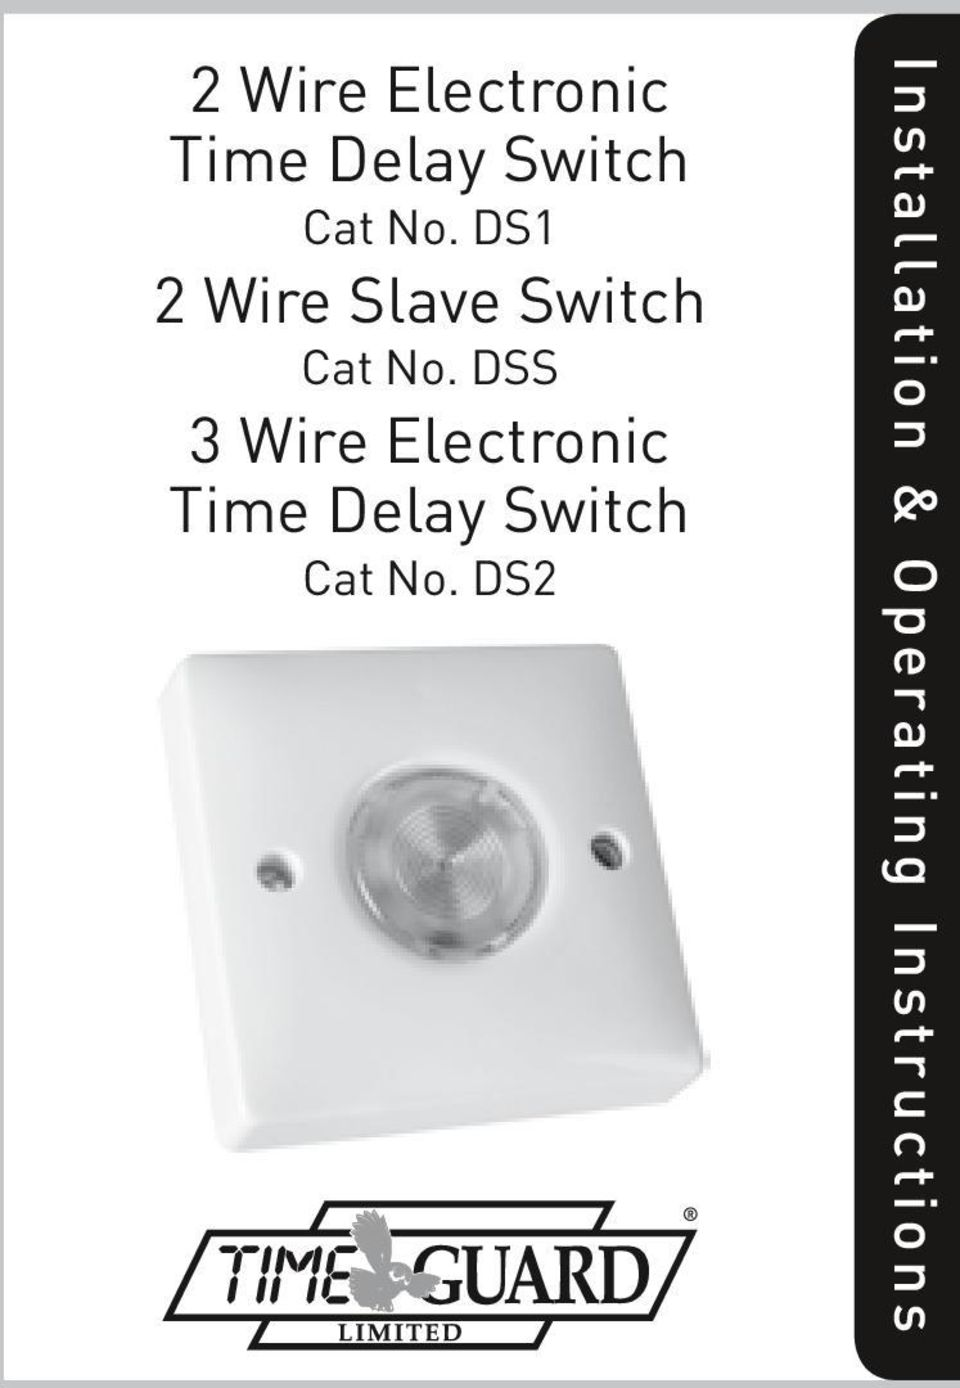 DSS 3 Wire Electronic Time Delay Switch